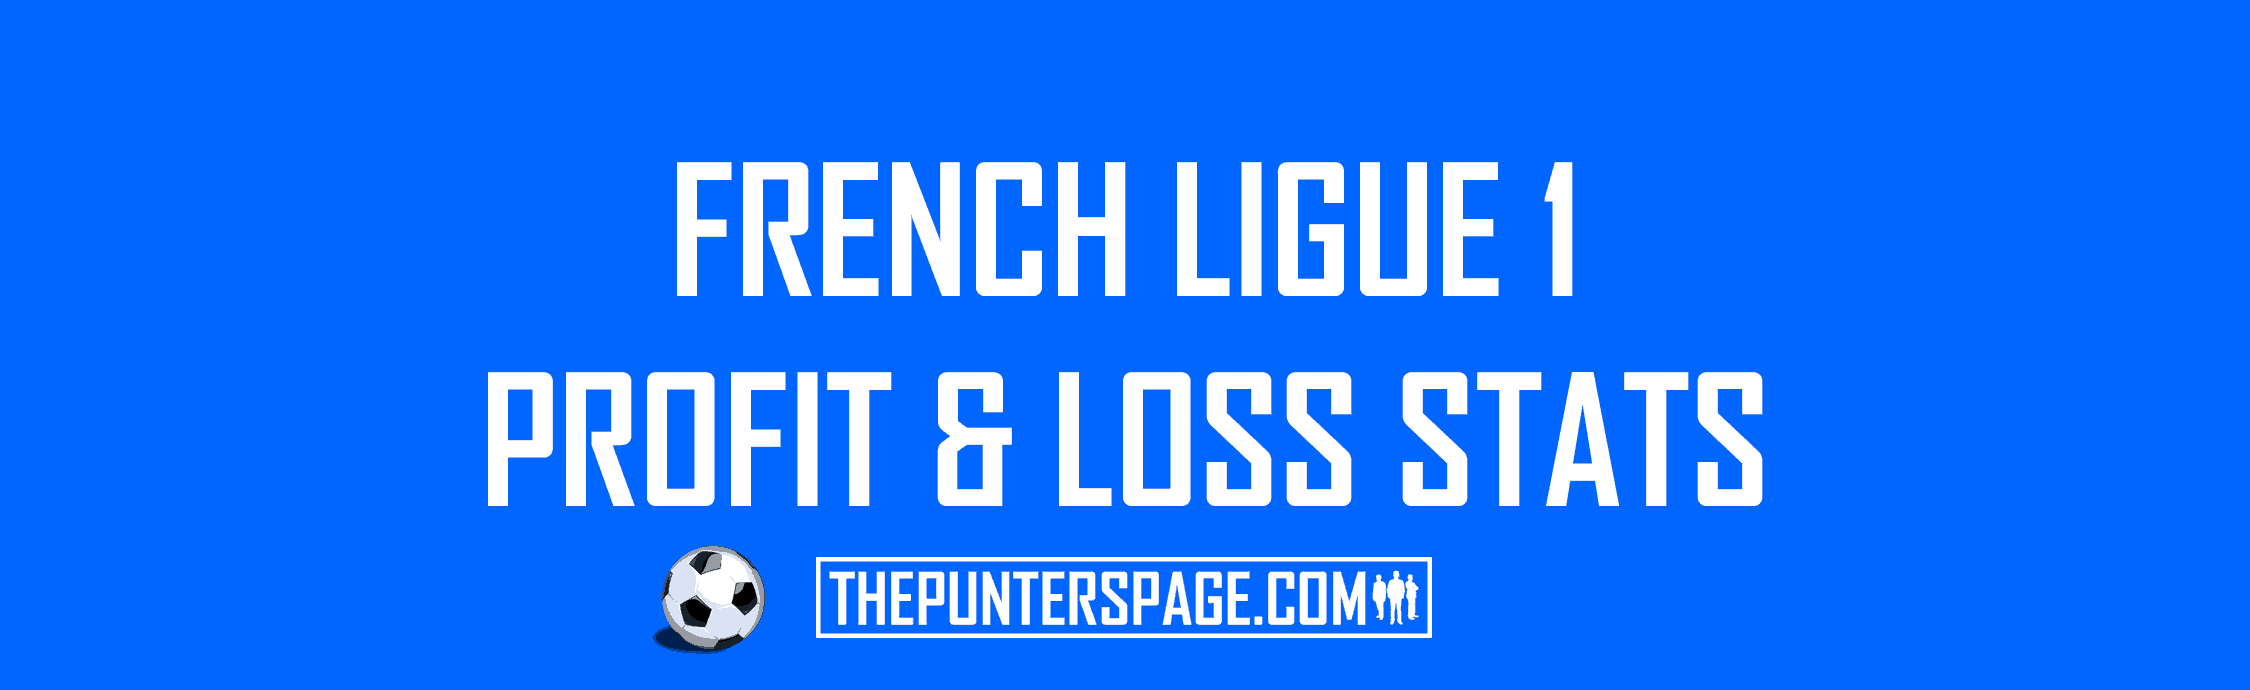 French Ligue 1 Profit & Loss Statistics